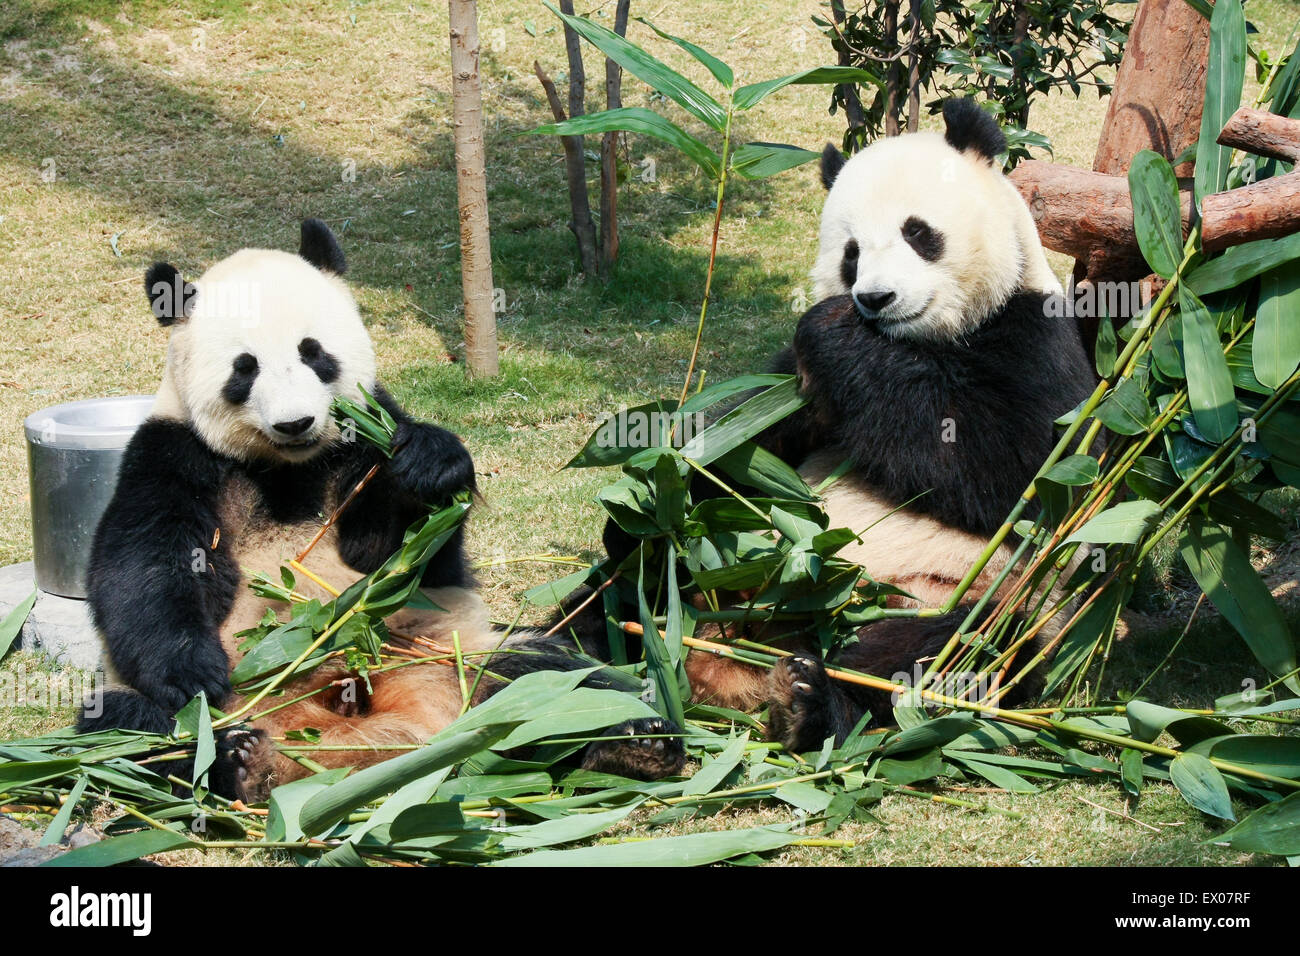 3cbec6c300d Two Pandas Bamboo Stock Photos   Two Pandas Bamboo Stock Images - Alamy